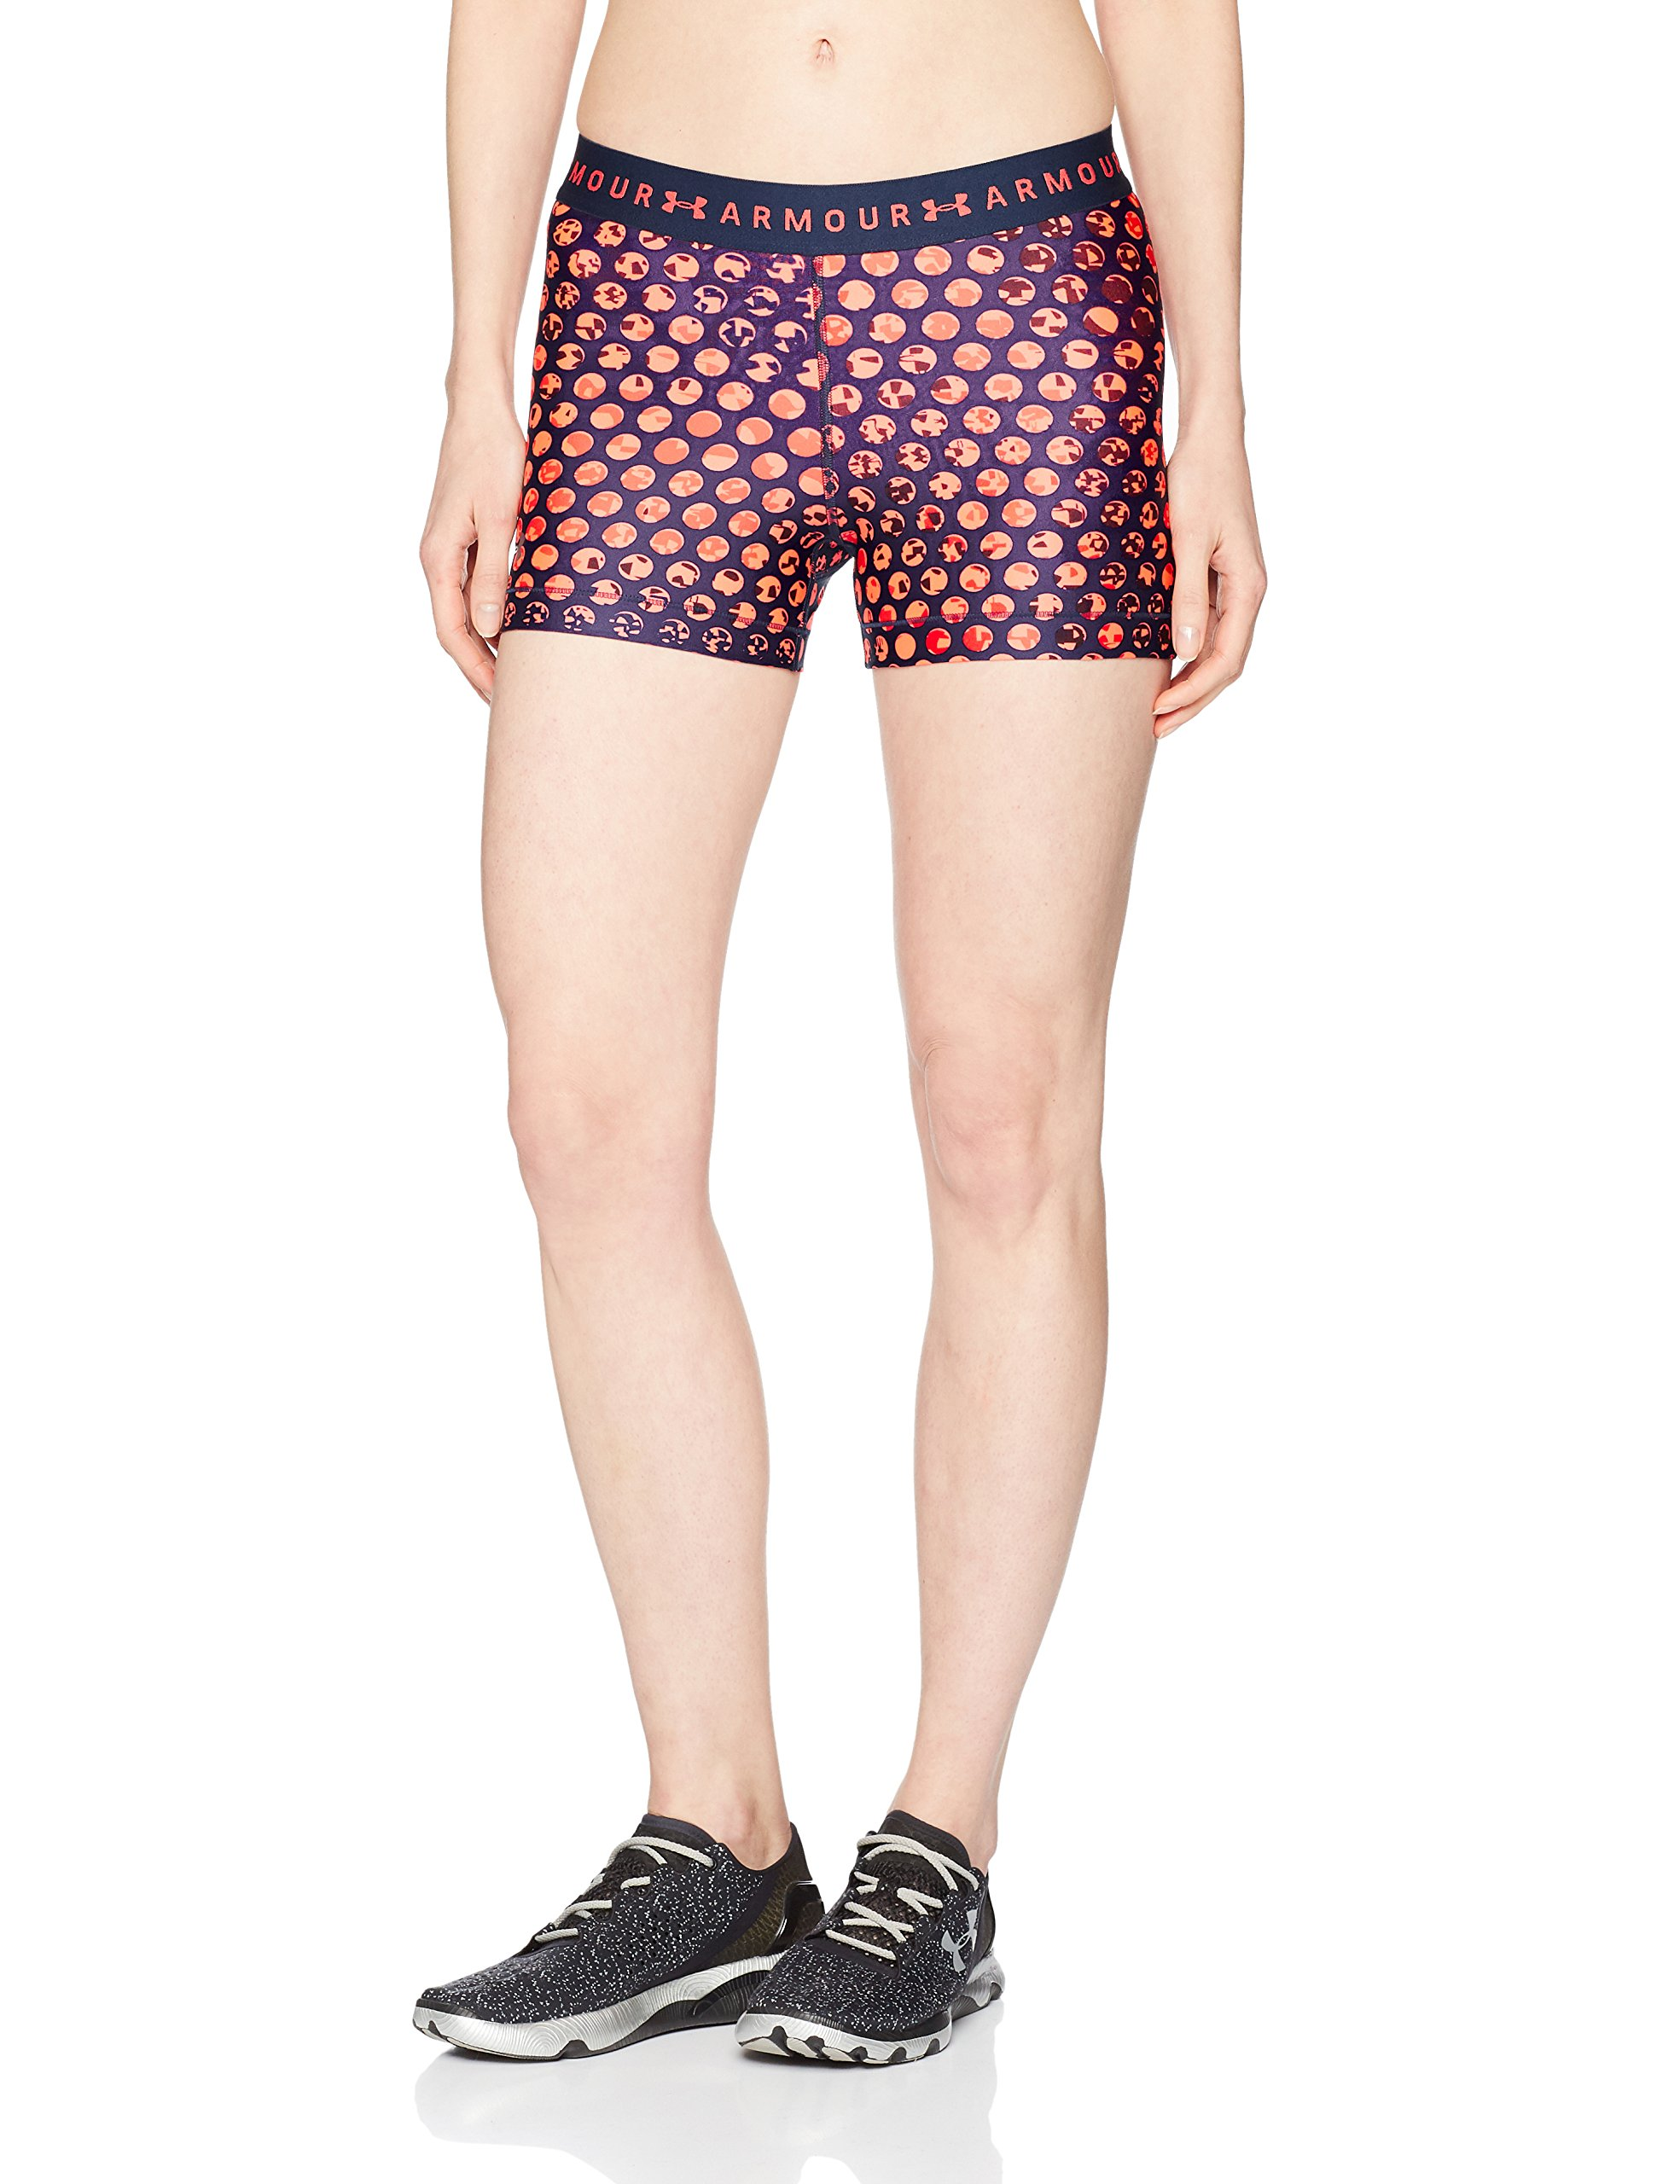 Under Armour Women's HeatGear Armour Printed Shorty, Academy (408)/Academy, X-Small by Under Armour